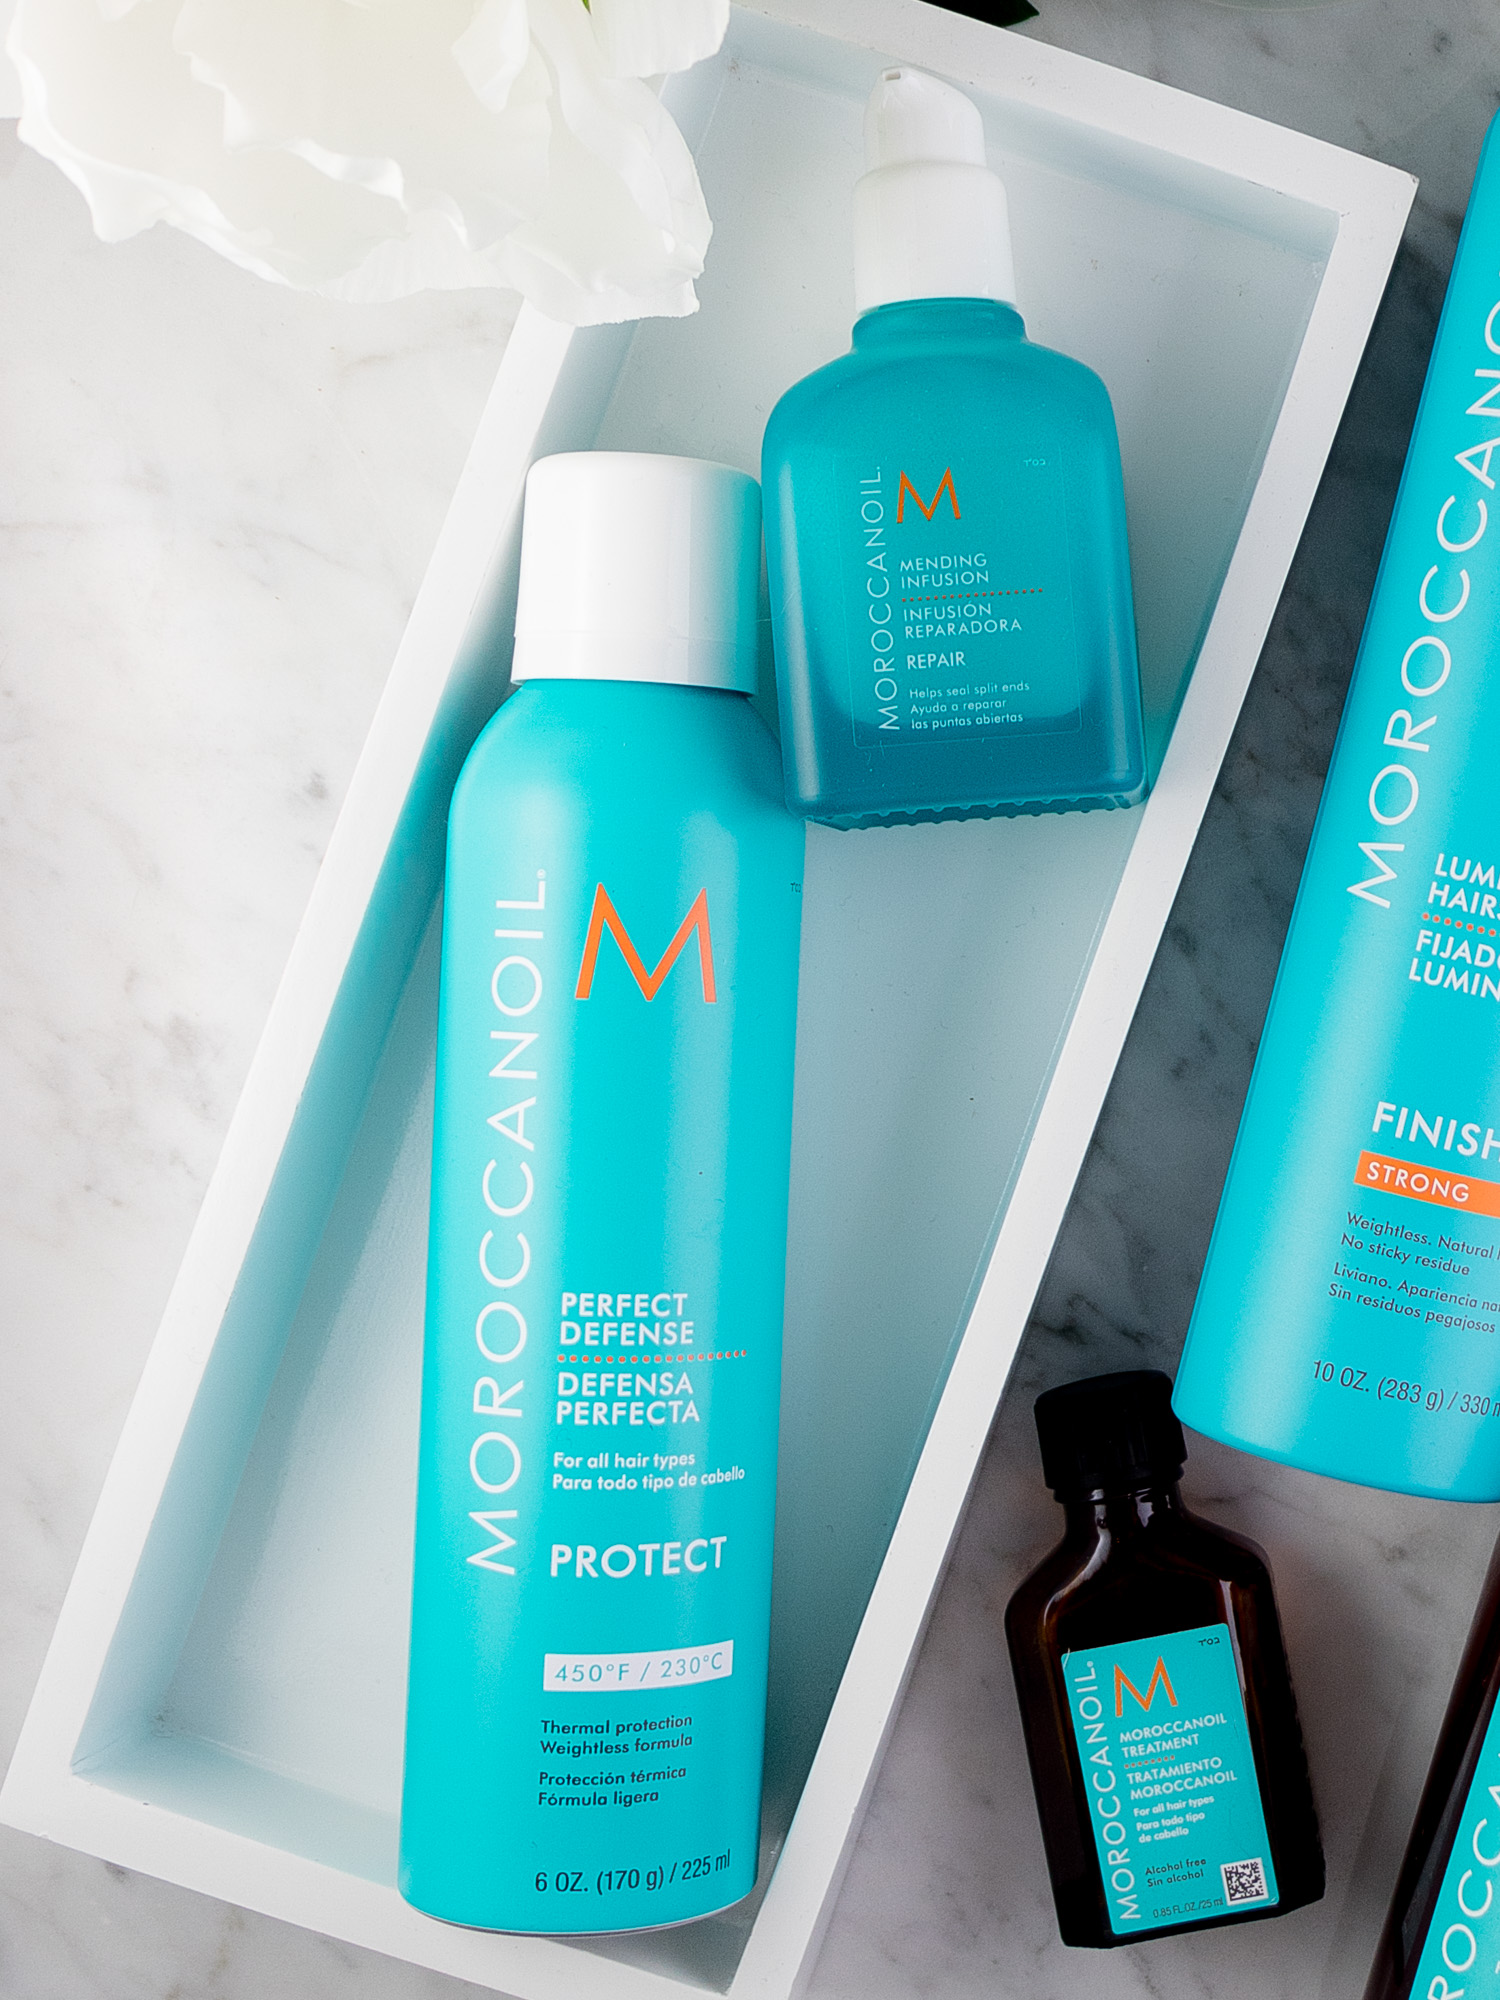 Moroccanoil Must-Haves: Mending Infusion & Perfect Defense